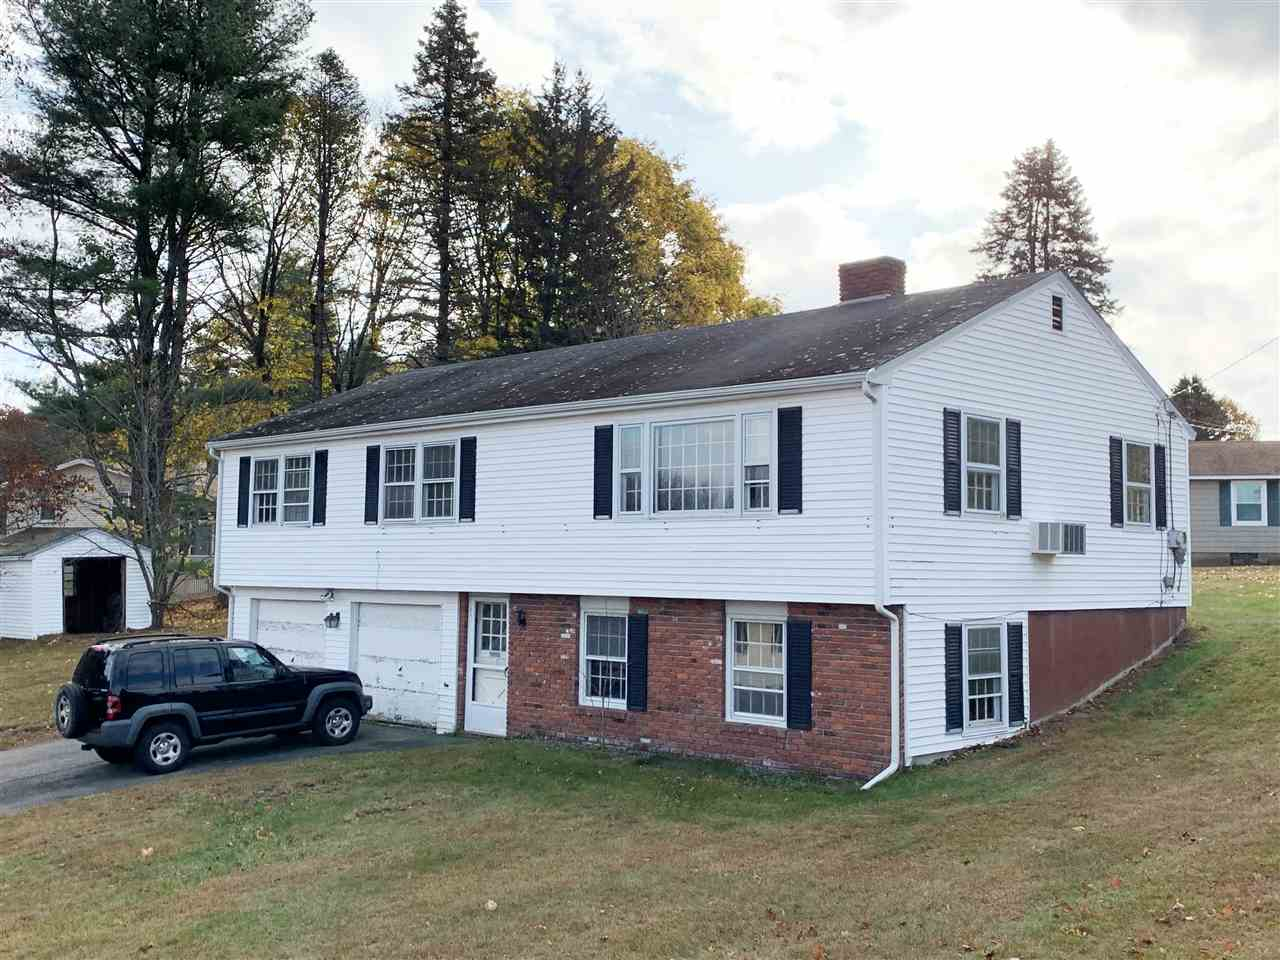 MLS 4785155: 7 Hillside Road, North Hampton NH